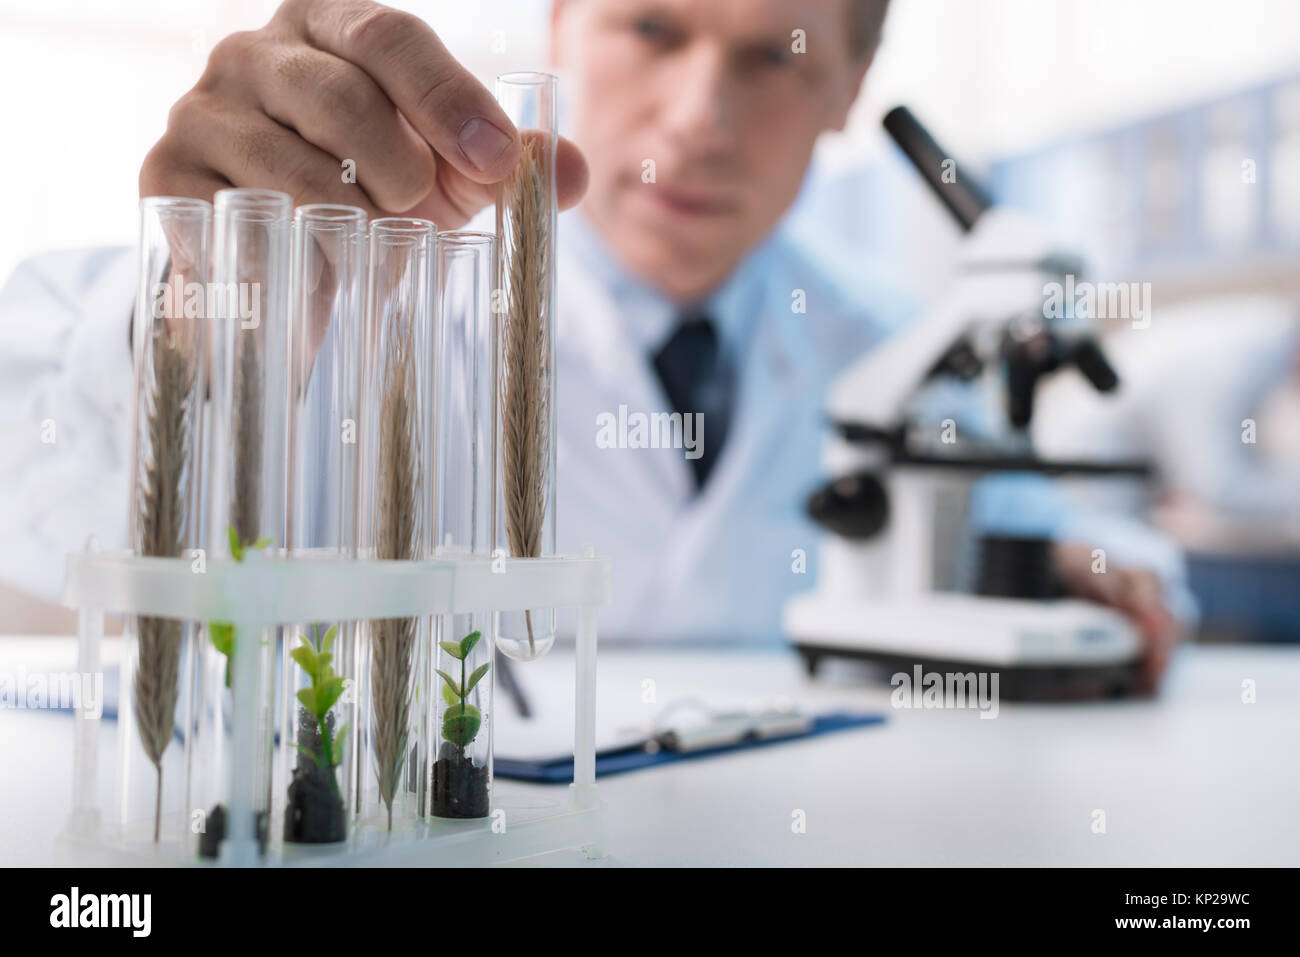 chemist working with test tubes - Stock Image